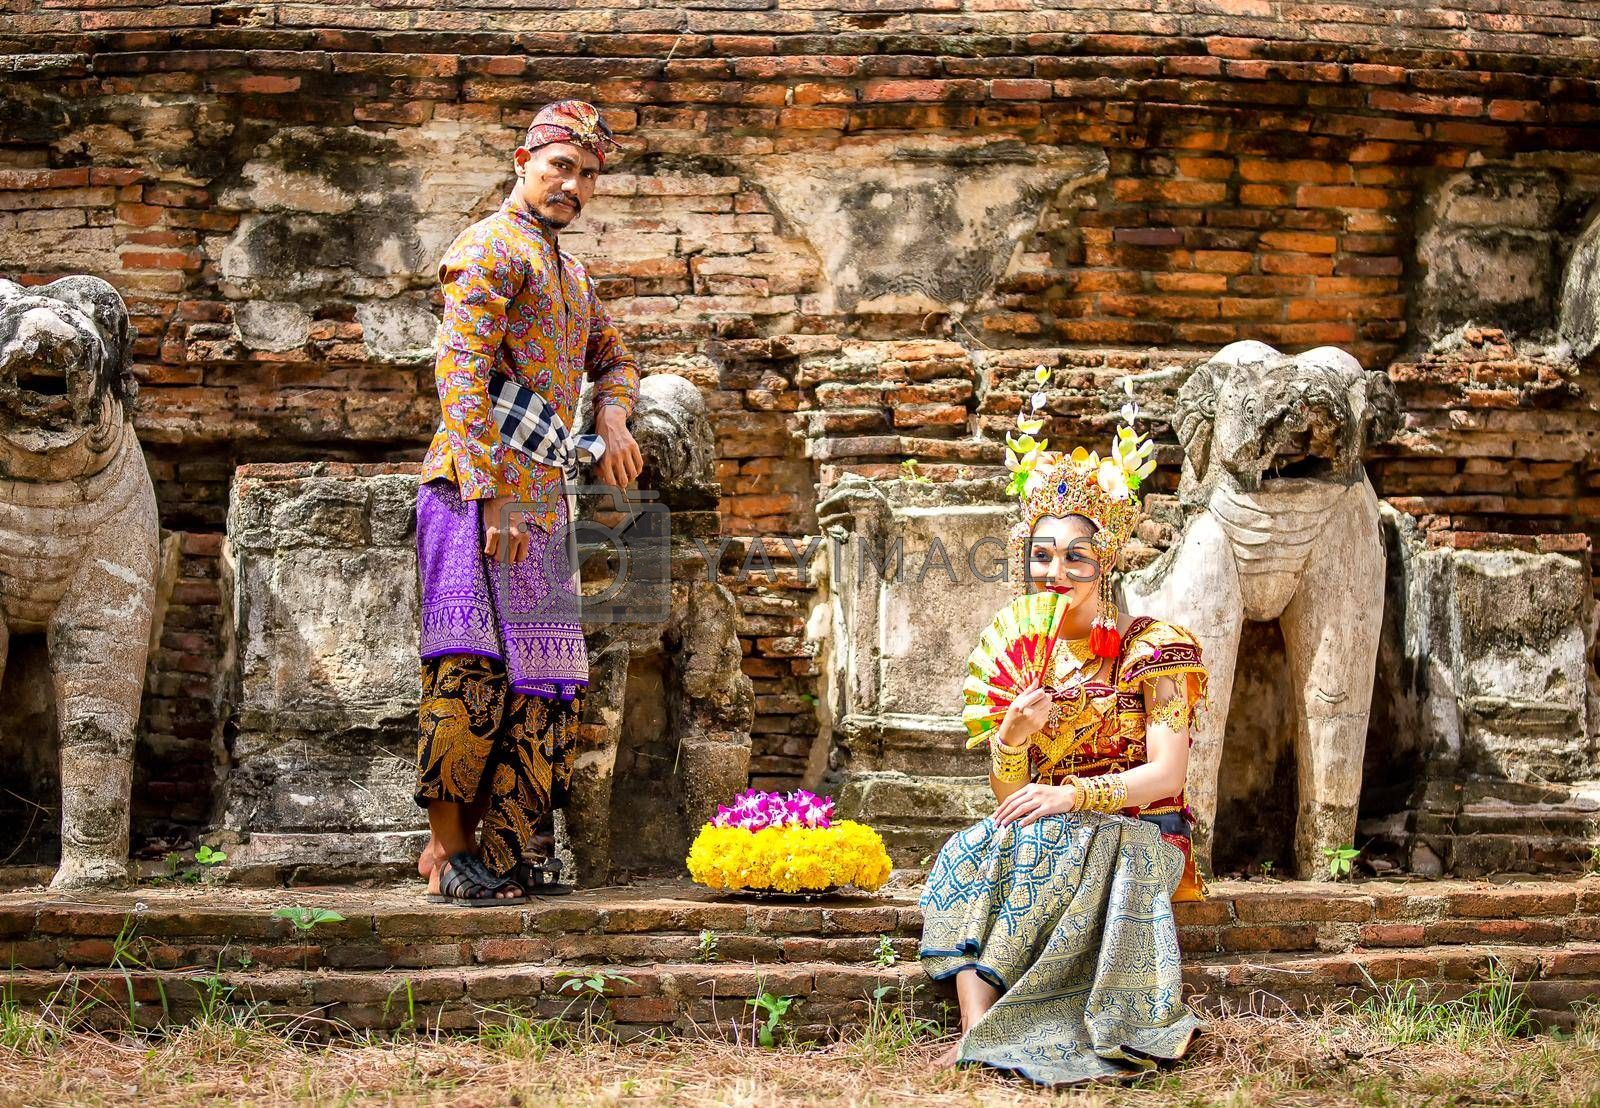 Portrait Of Smiling Young Woman In Balinese Traditional Clothing Holding Flower Bouquet At Temple